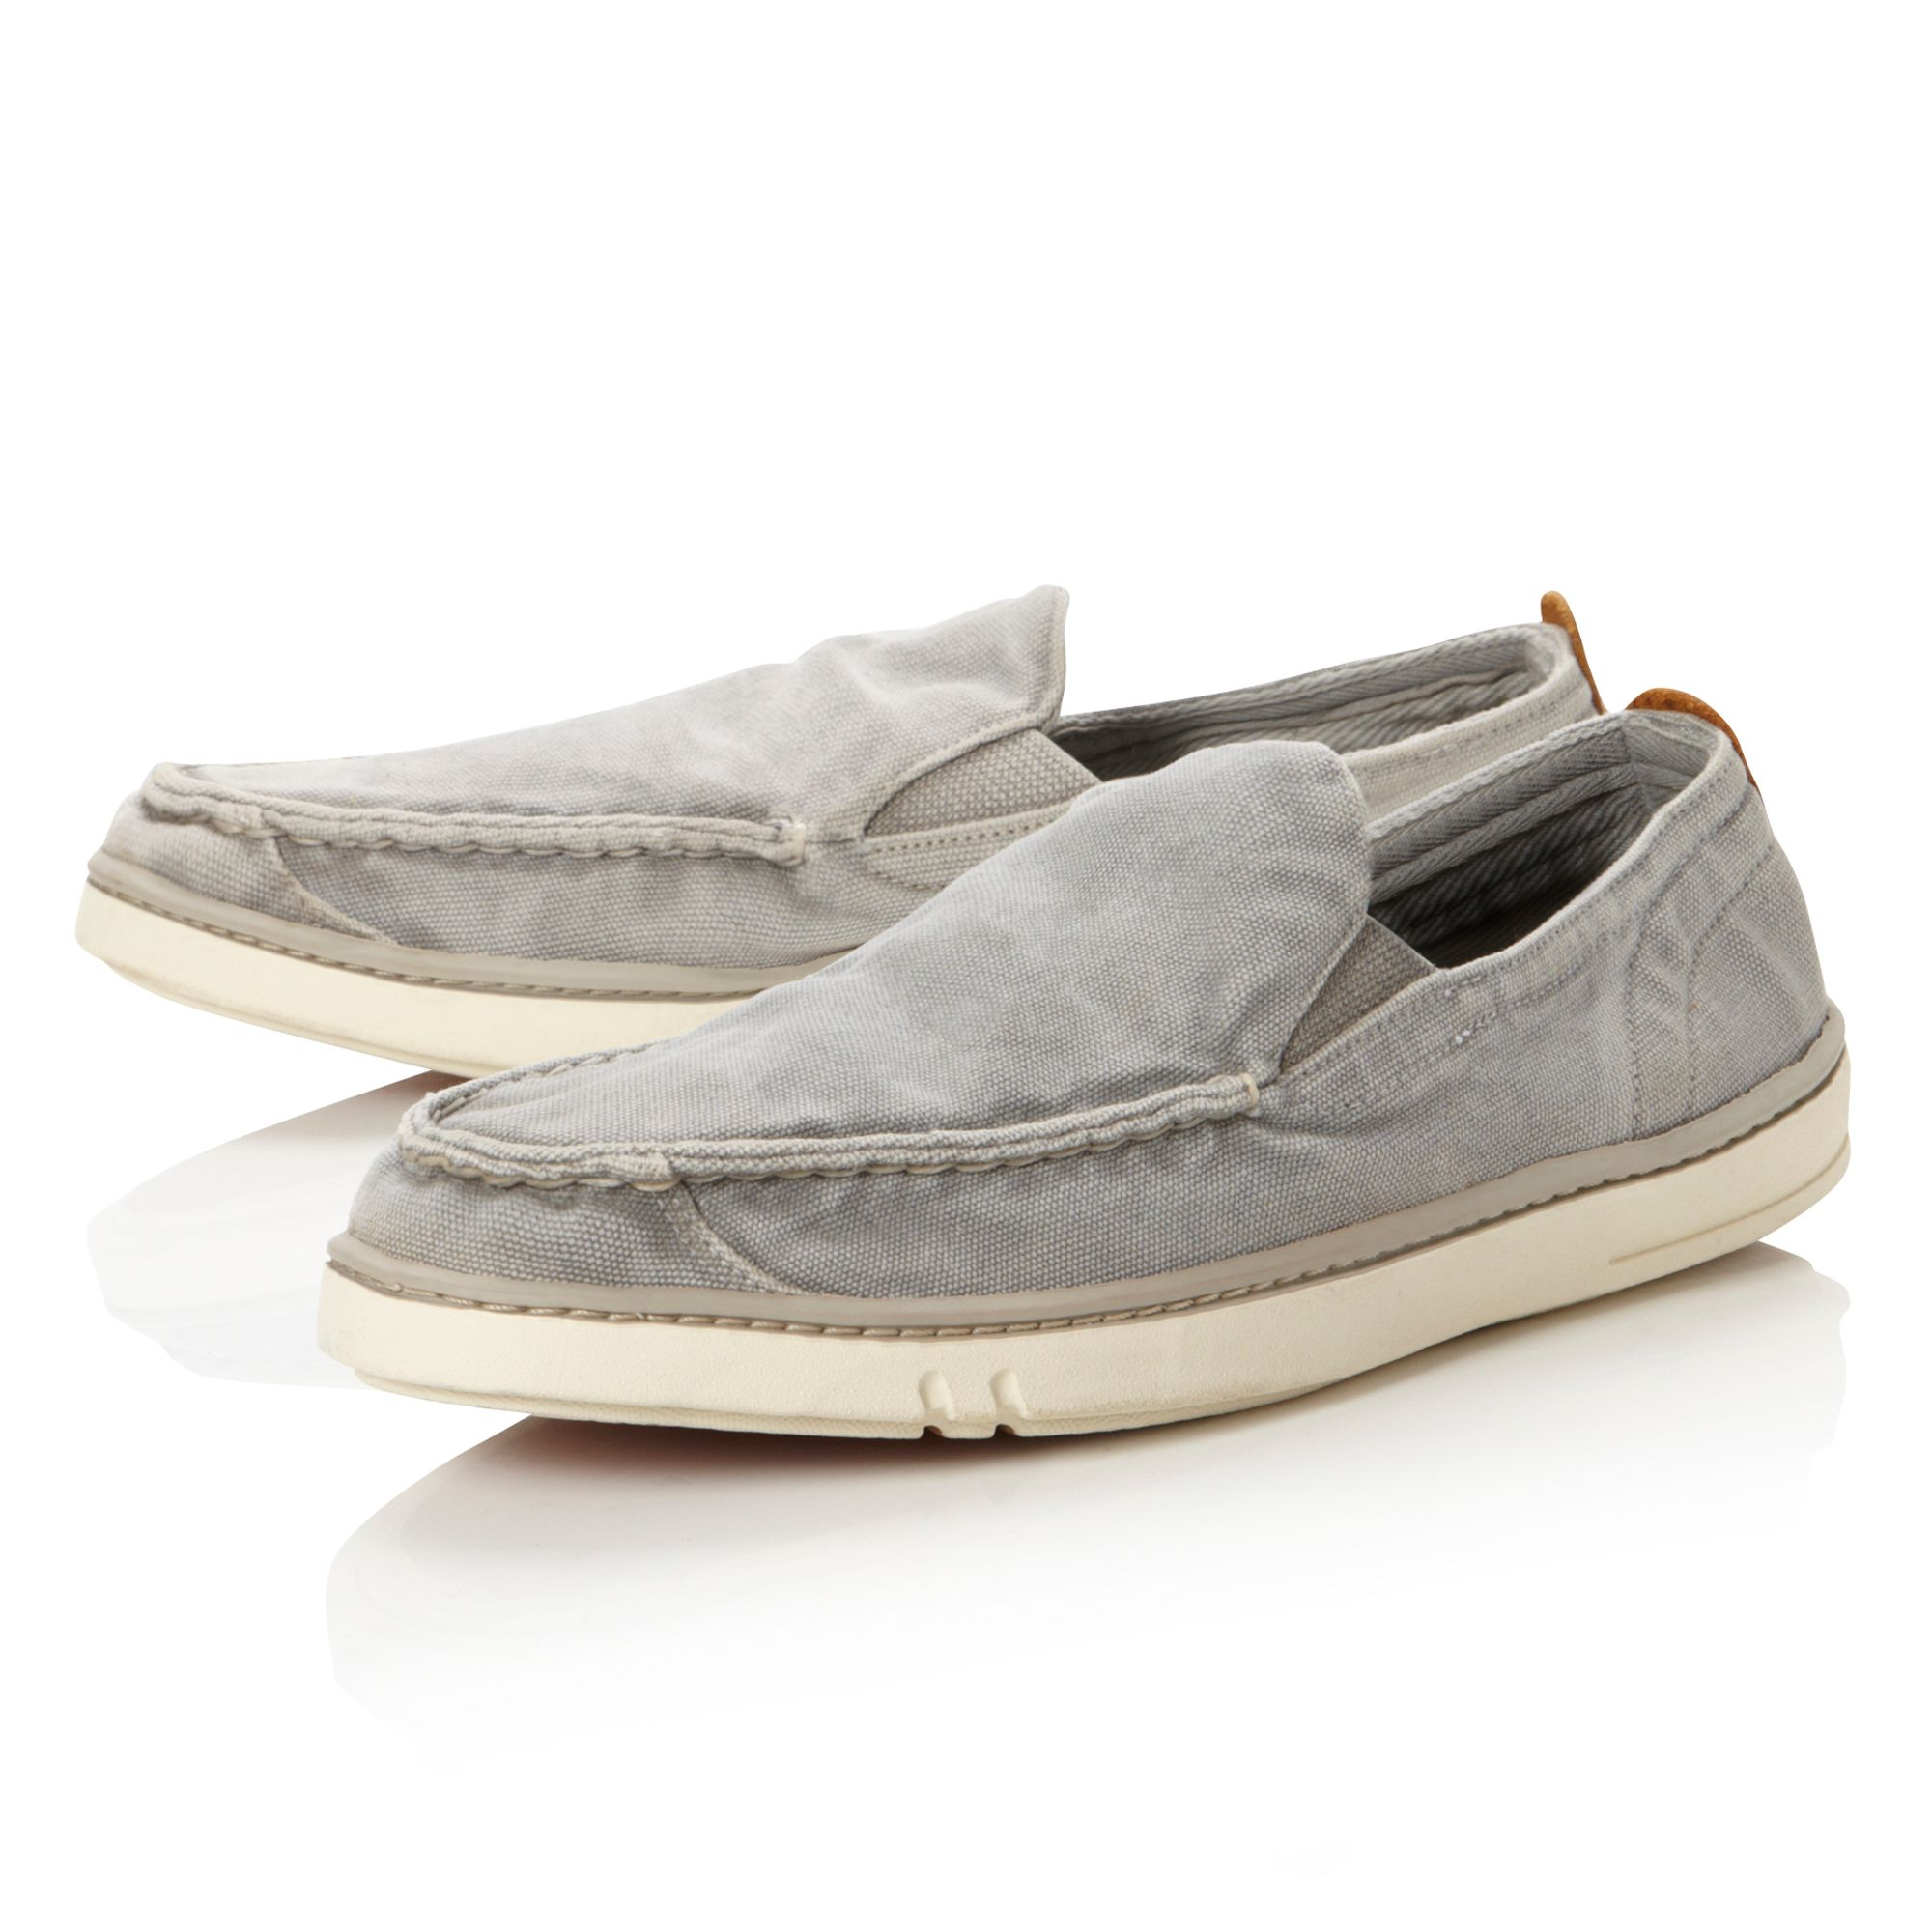 5739R unlined canvas slip on shoes